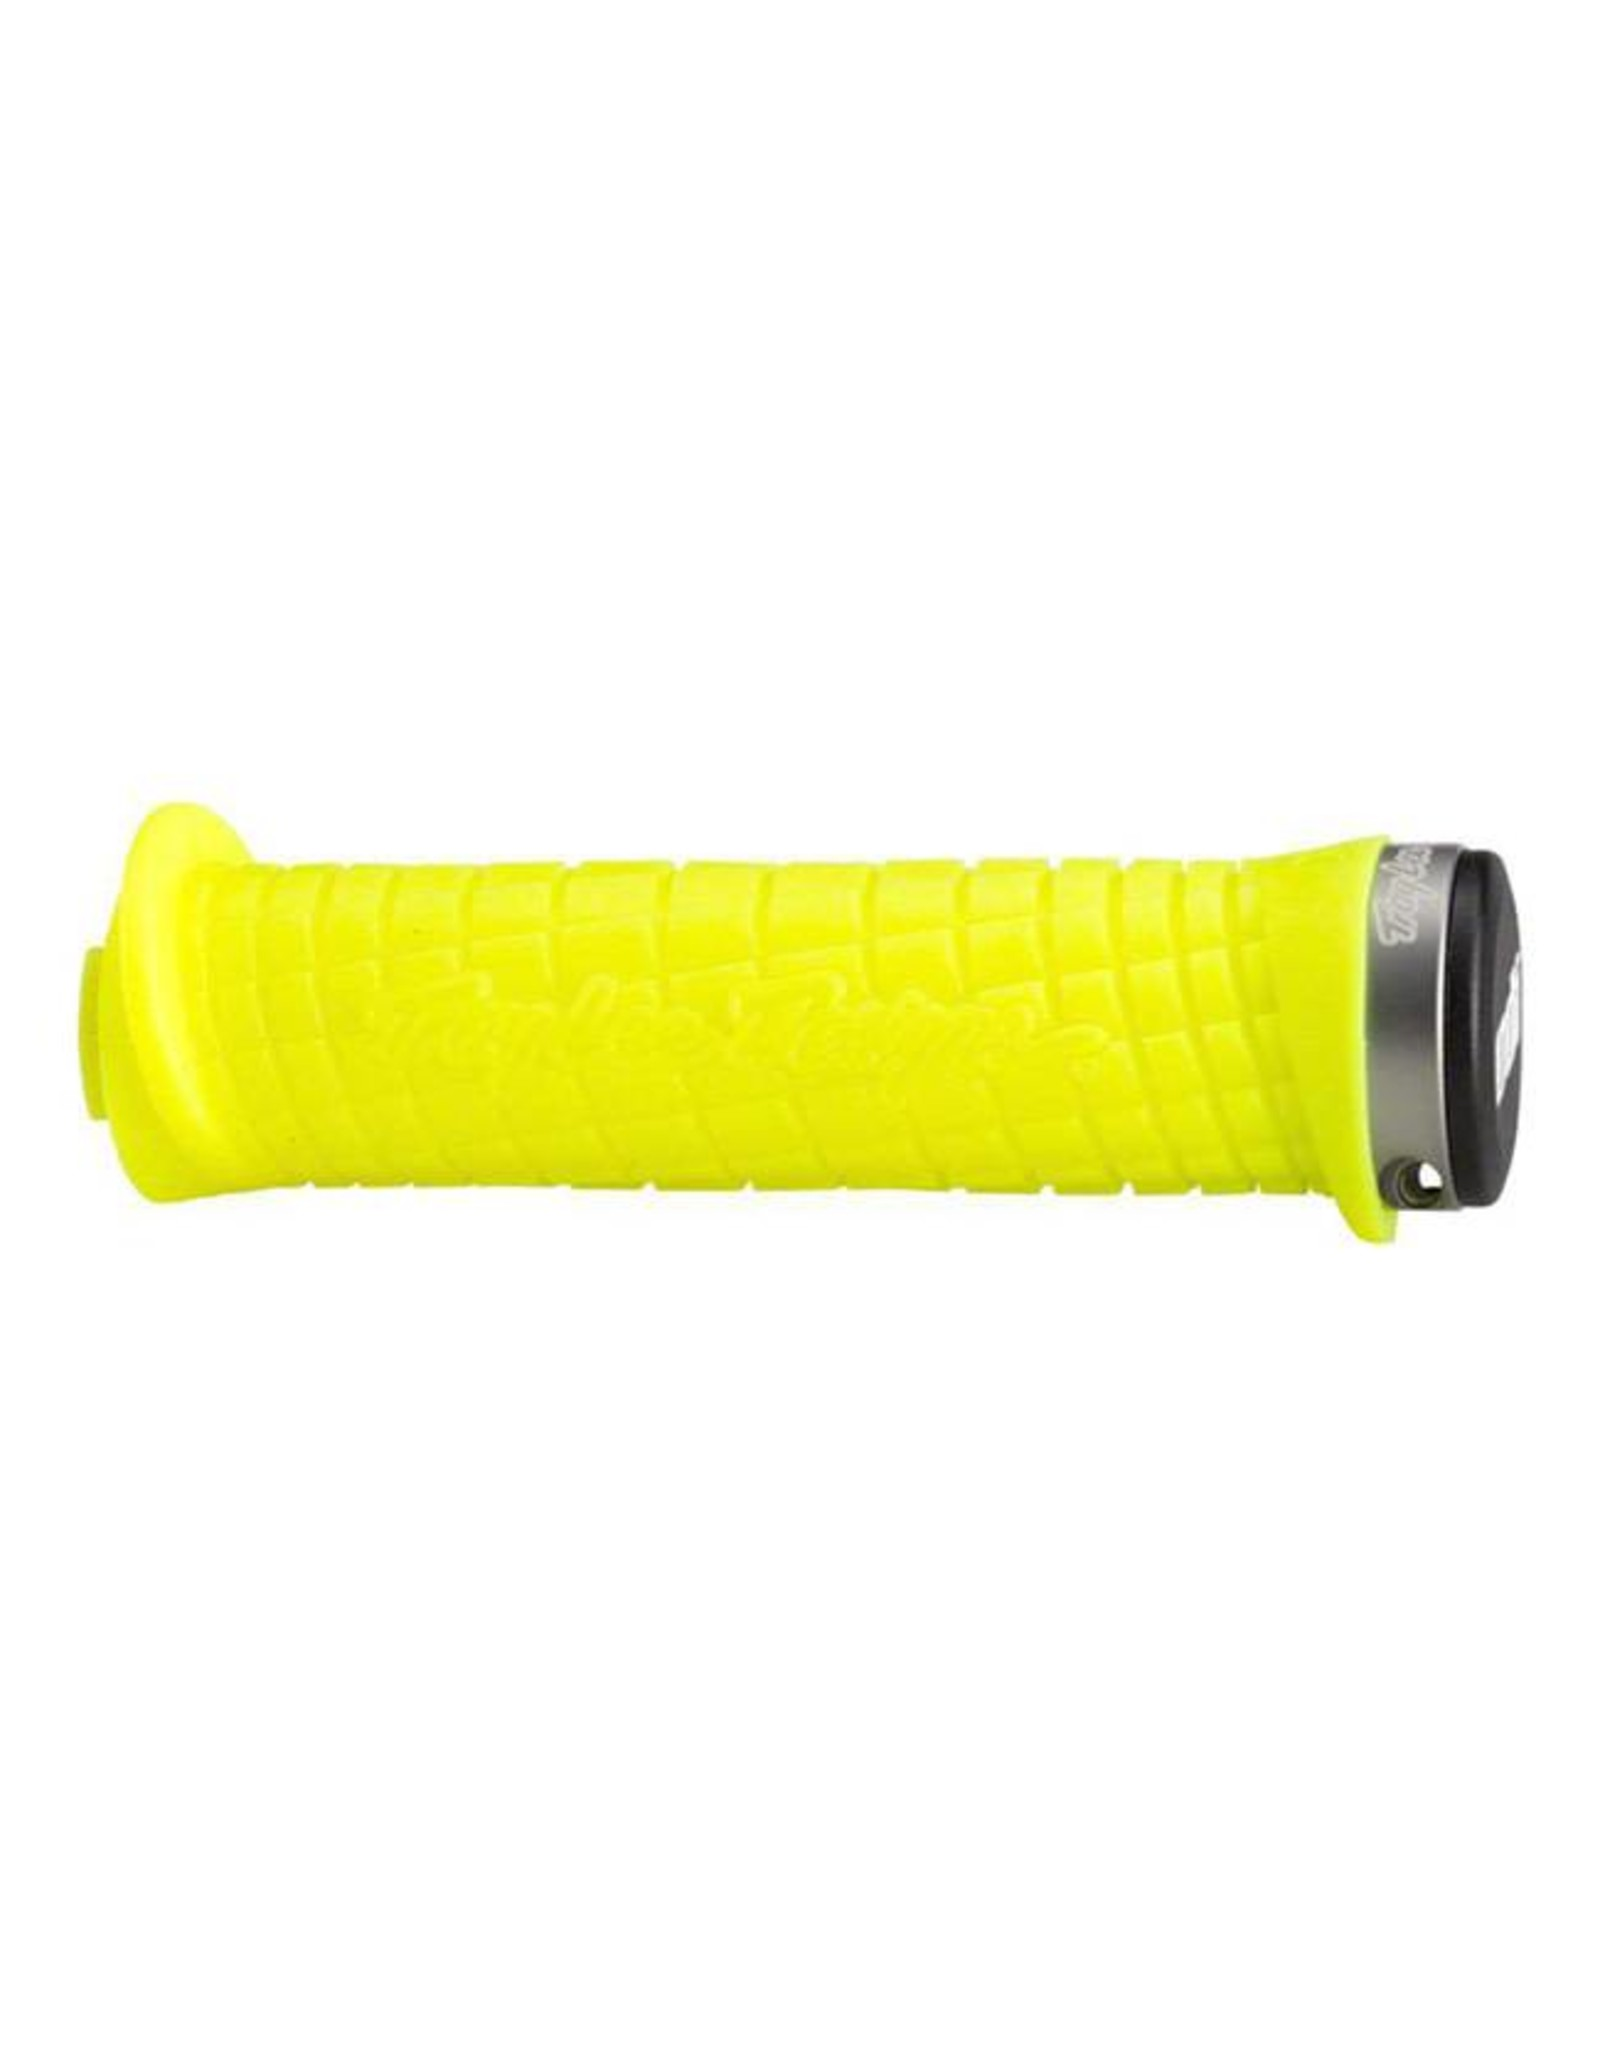 ODI ODI Troy Lee Lock-On Grips Bright Yellow with Gray Clamps